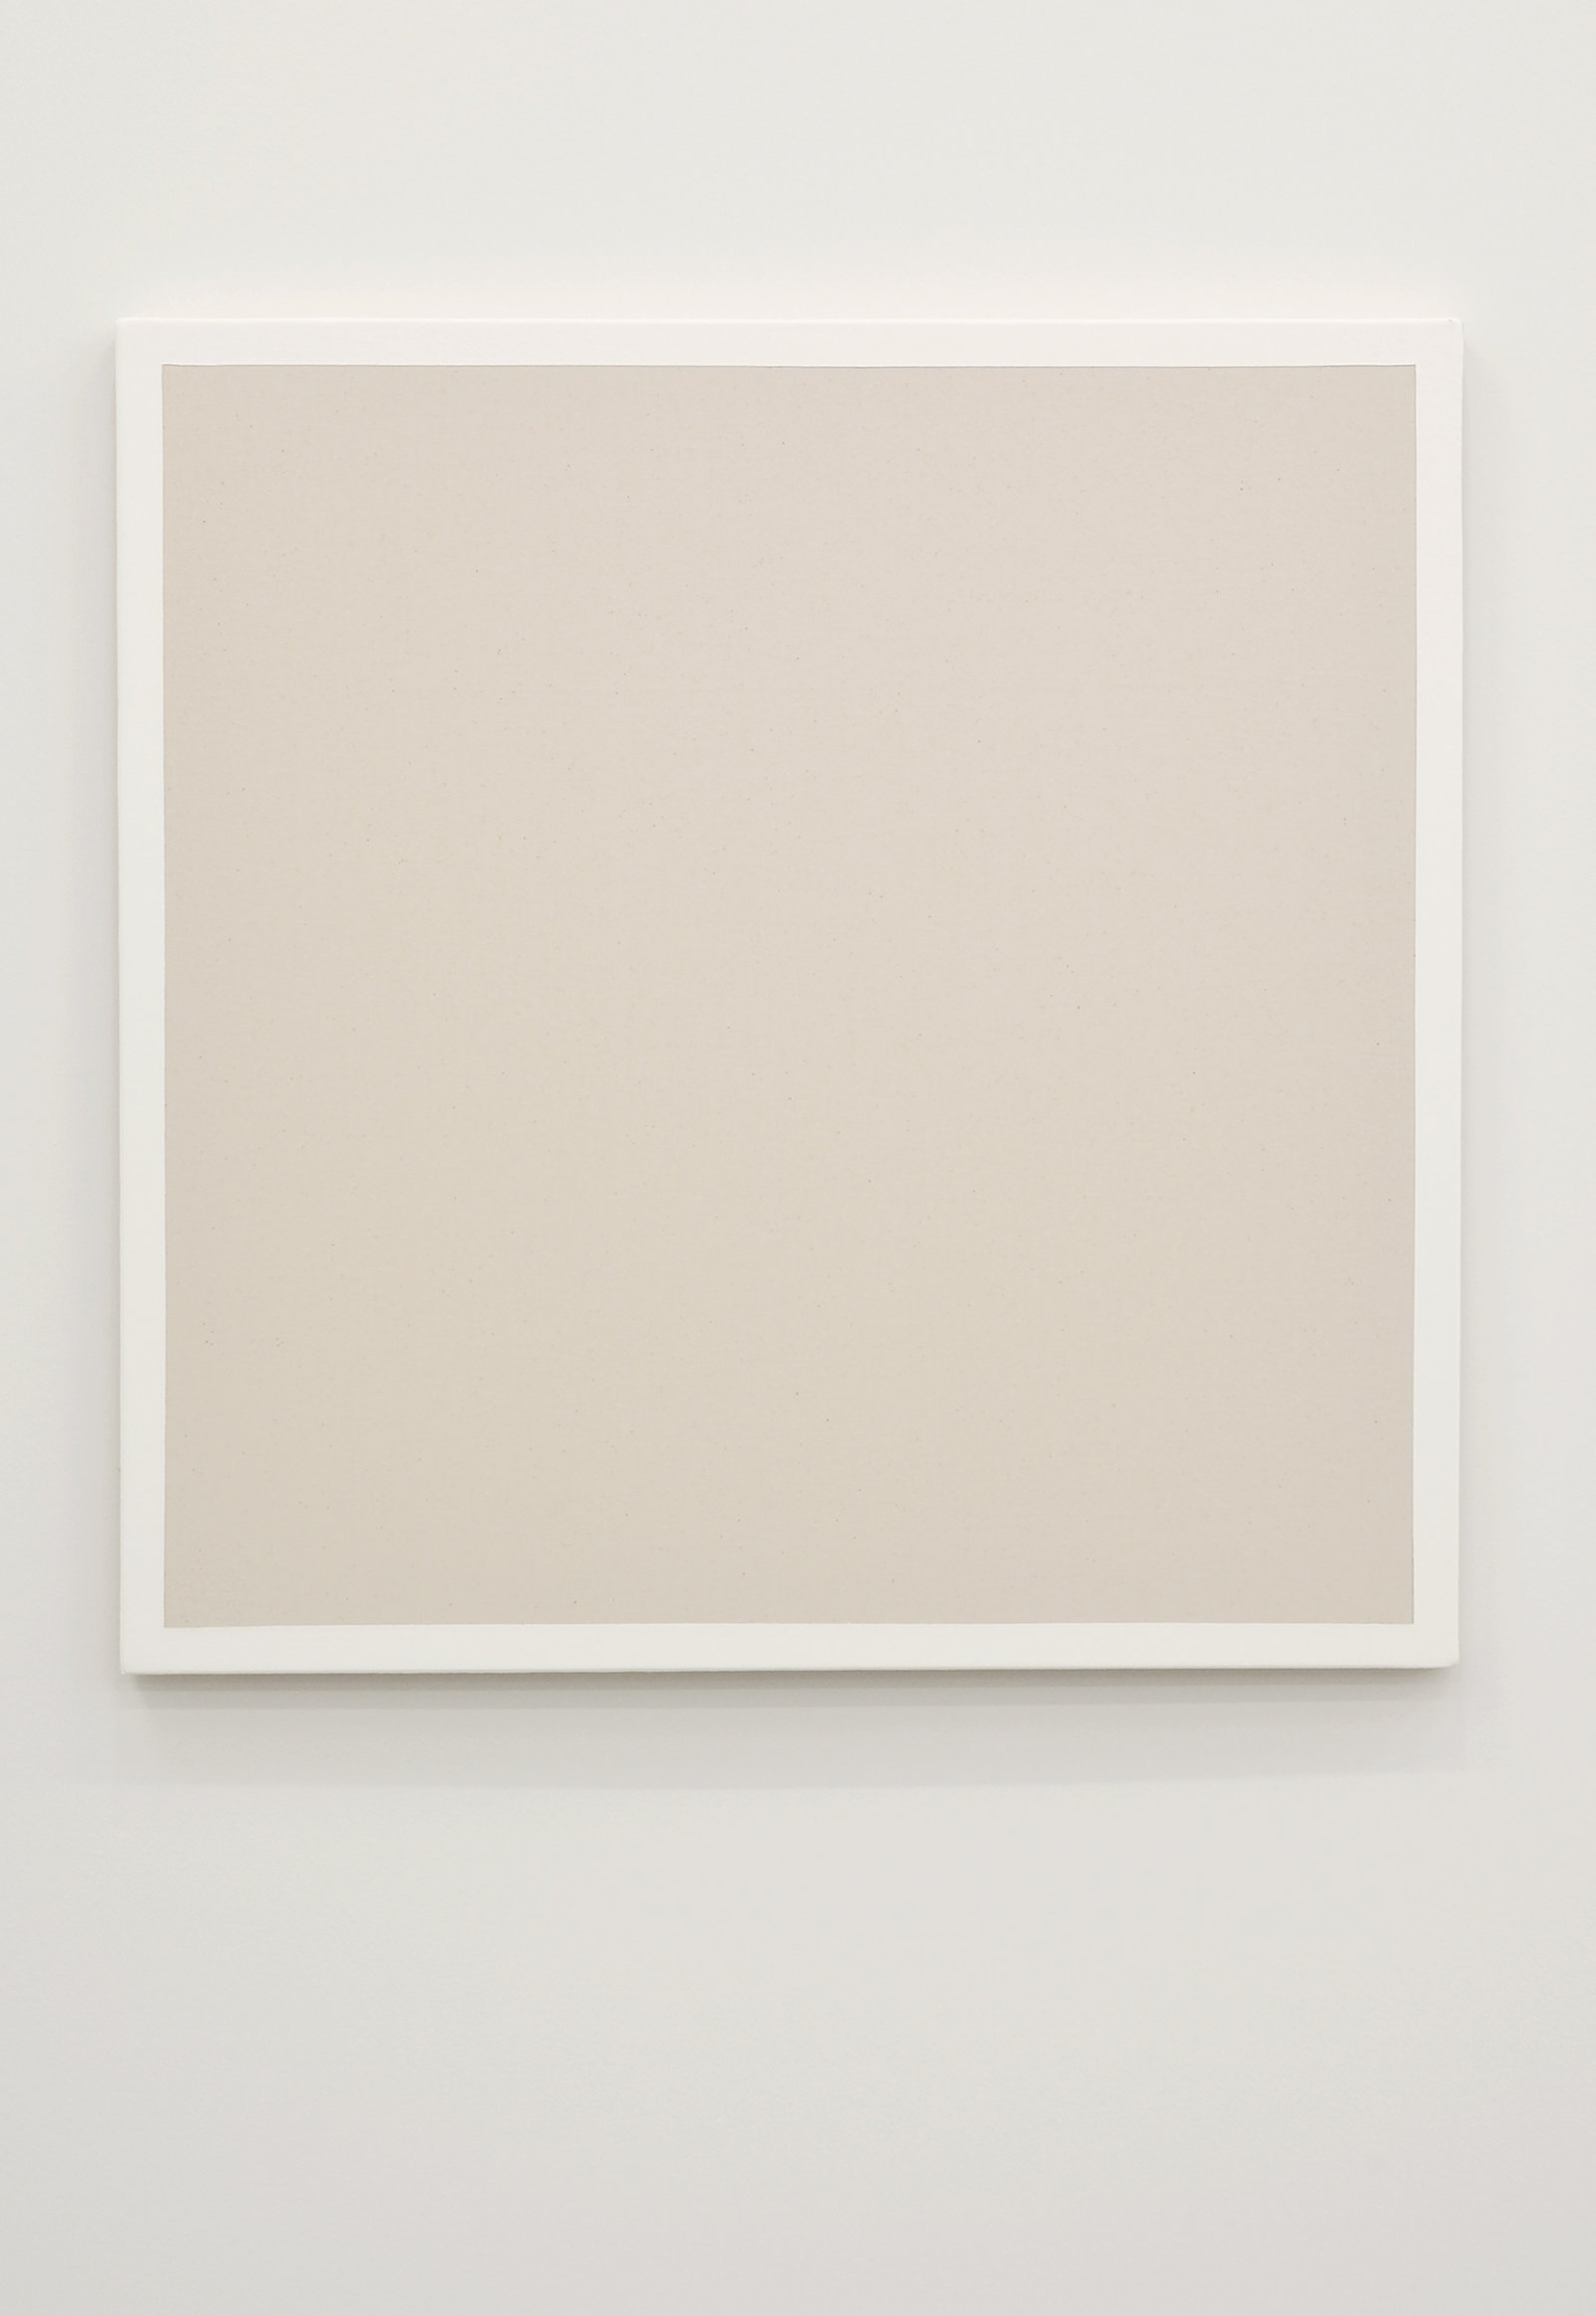 ​Arabella Campbell, One Inch from the Edge, 2007, acrylic on canvas, 30 x 30 in. (76 x 76 cm) by